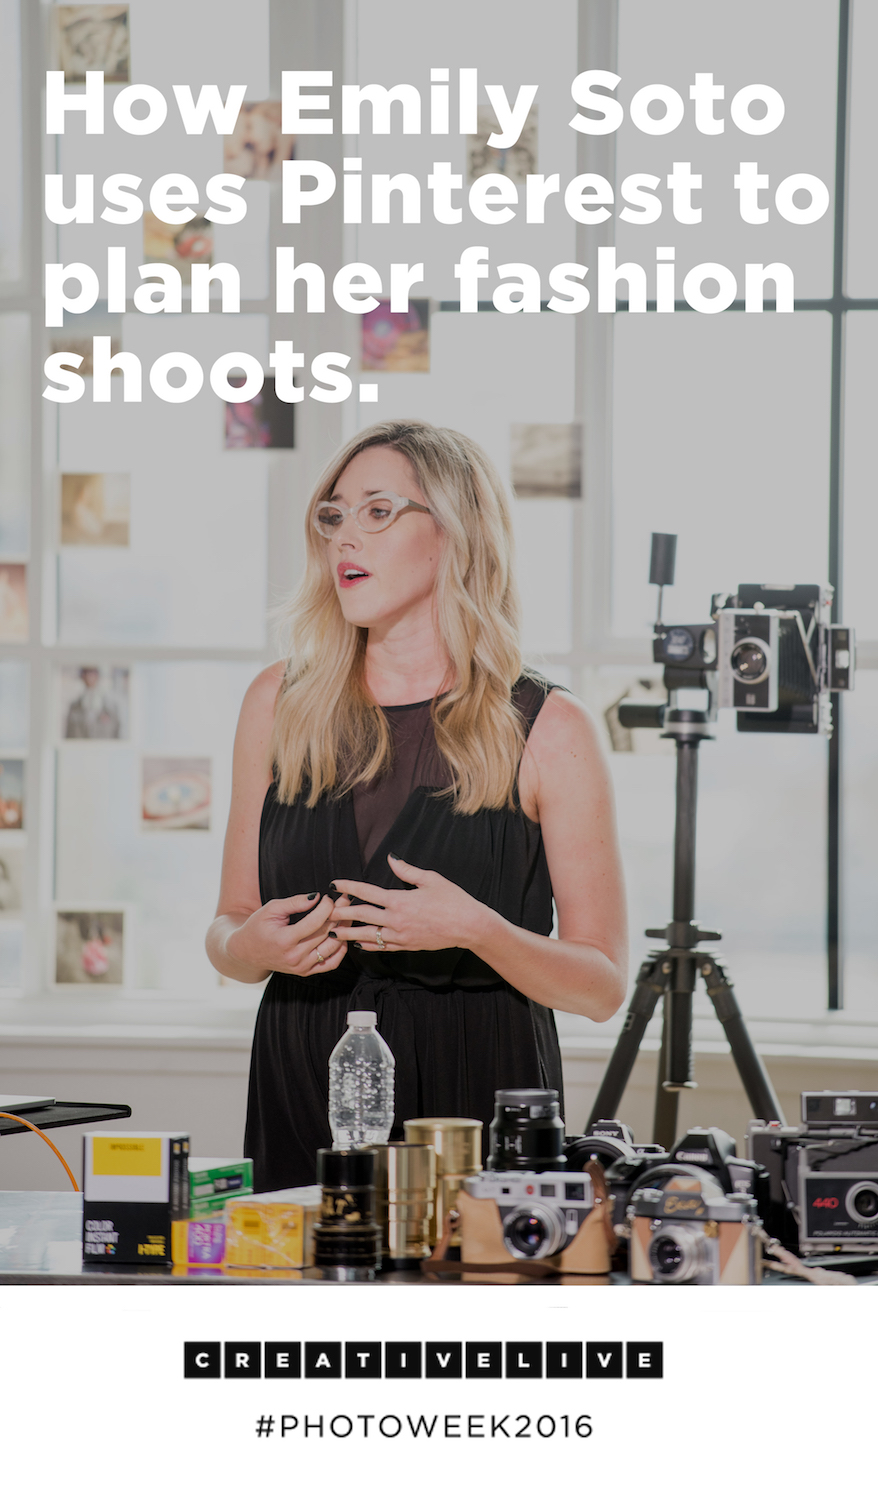 Fashion photographer Emily Soto uses Pinterest to plan her shoots! Find out more in this post.